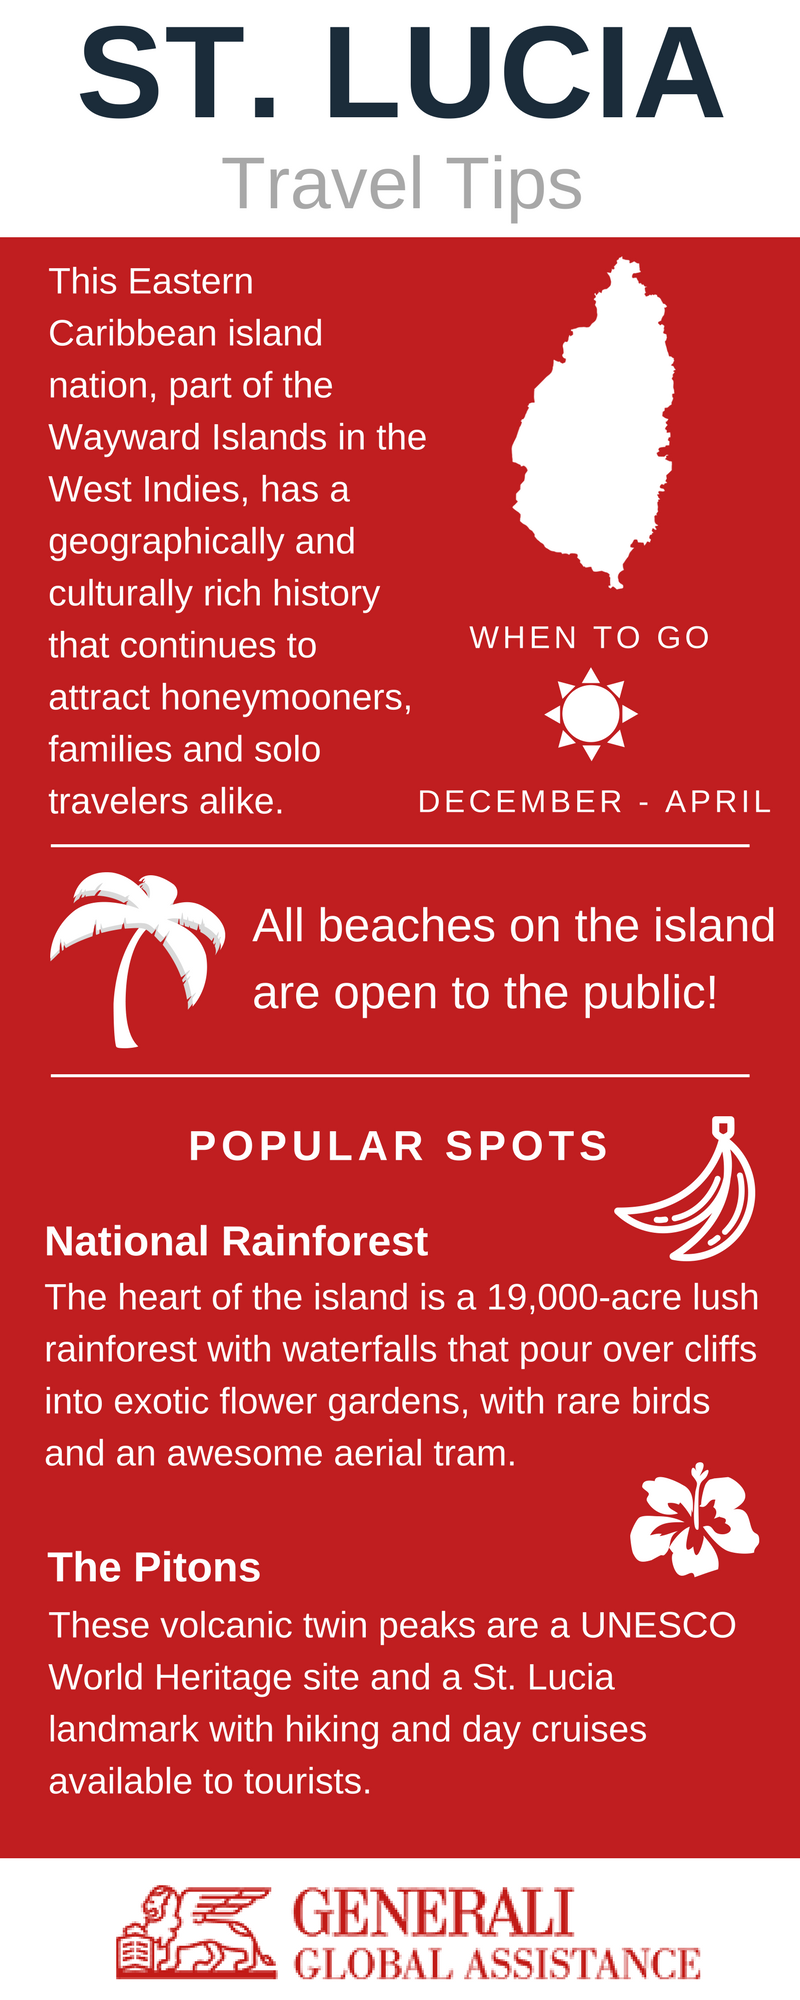 St. Lucia Travel Tips Infographic